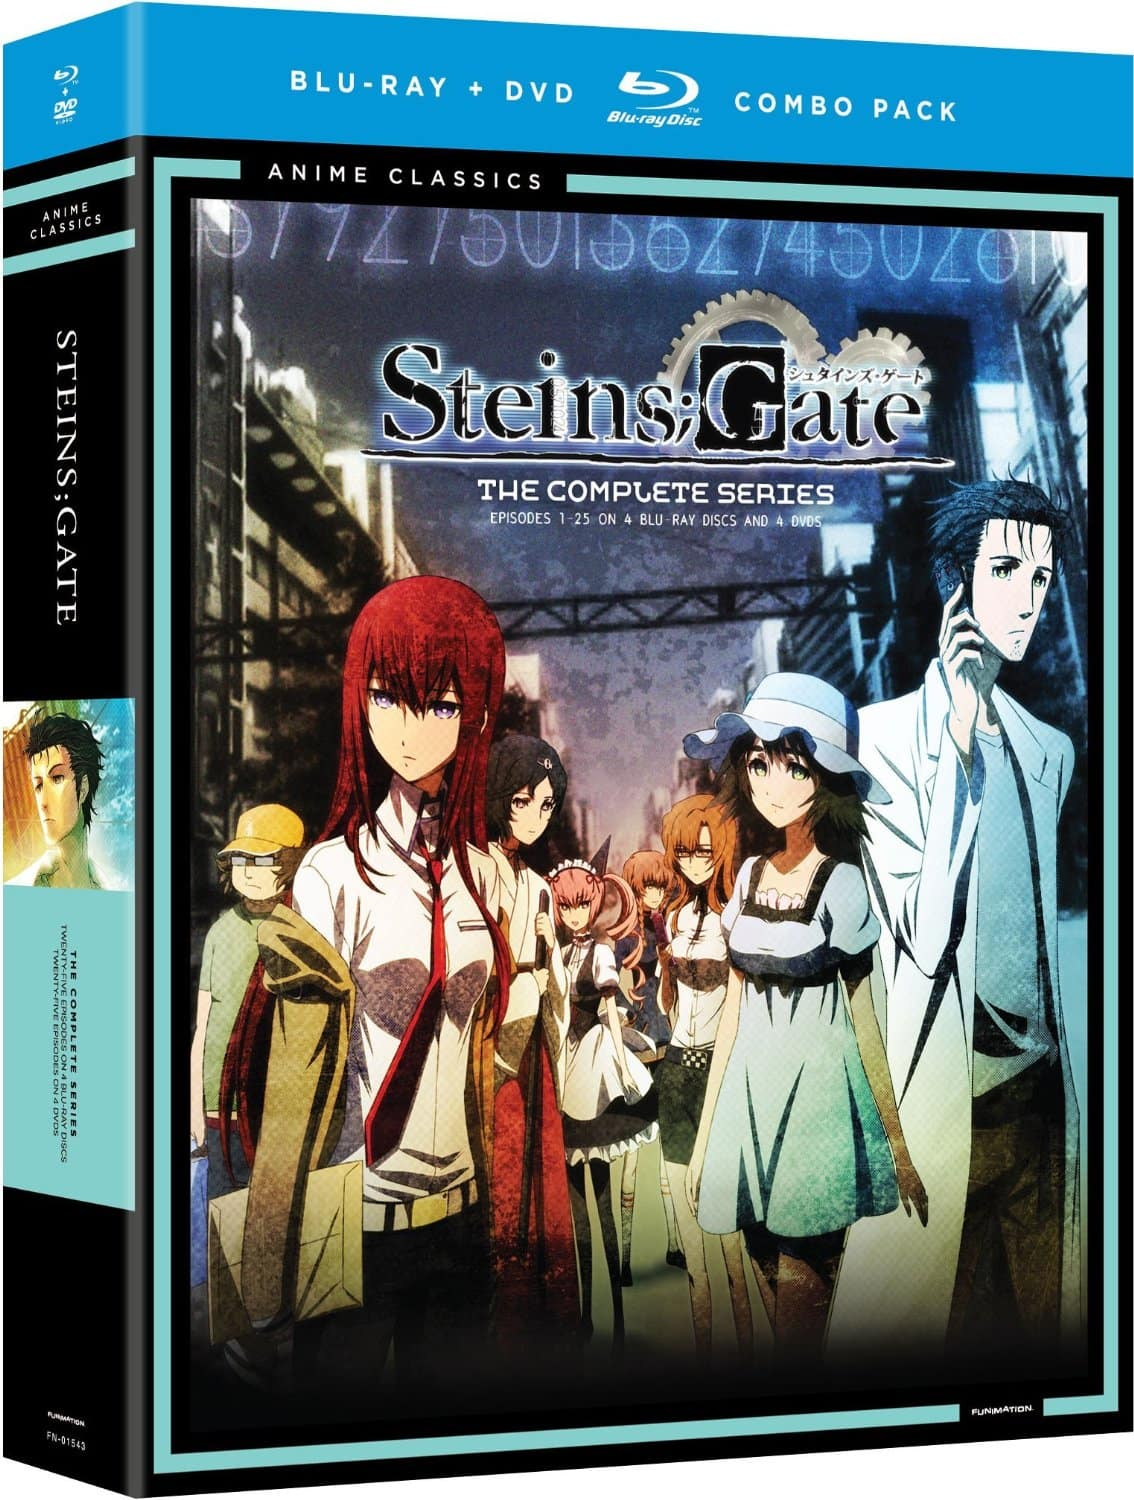 Steins Gate: Complete Classic Series (Blu-ray)  $24